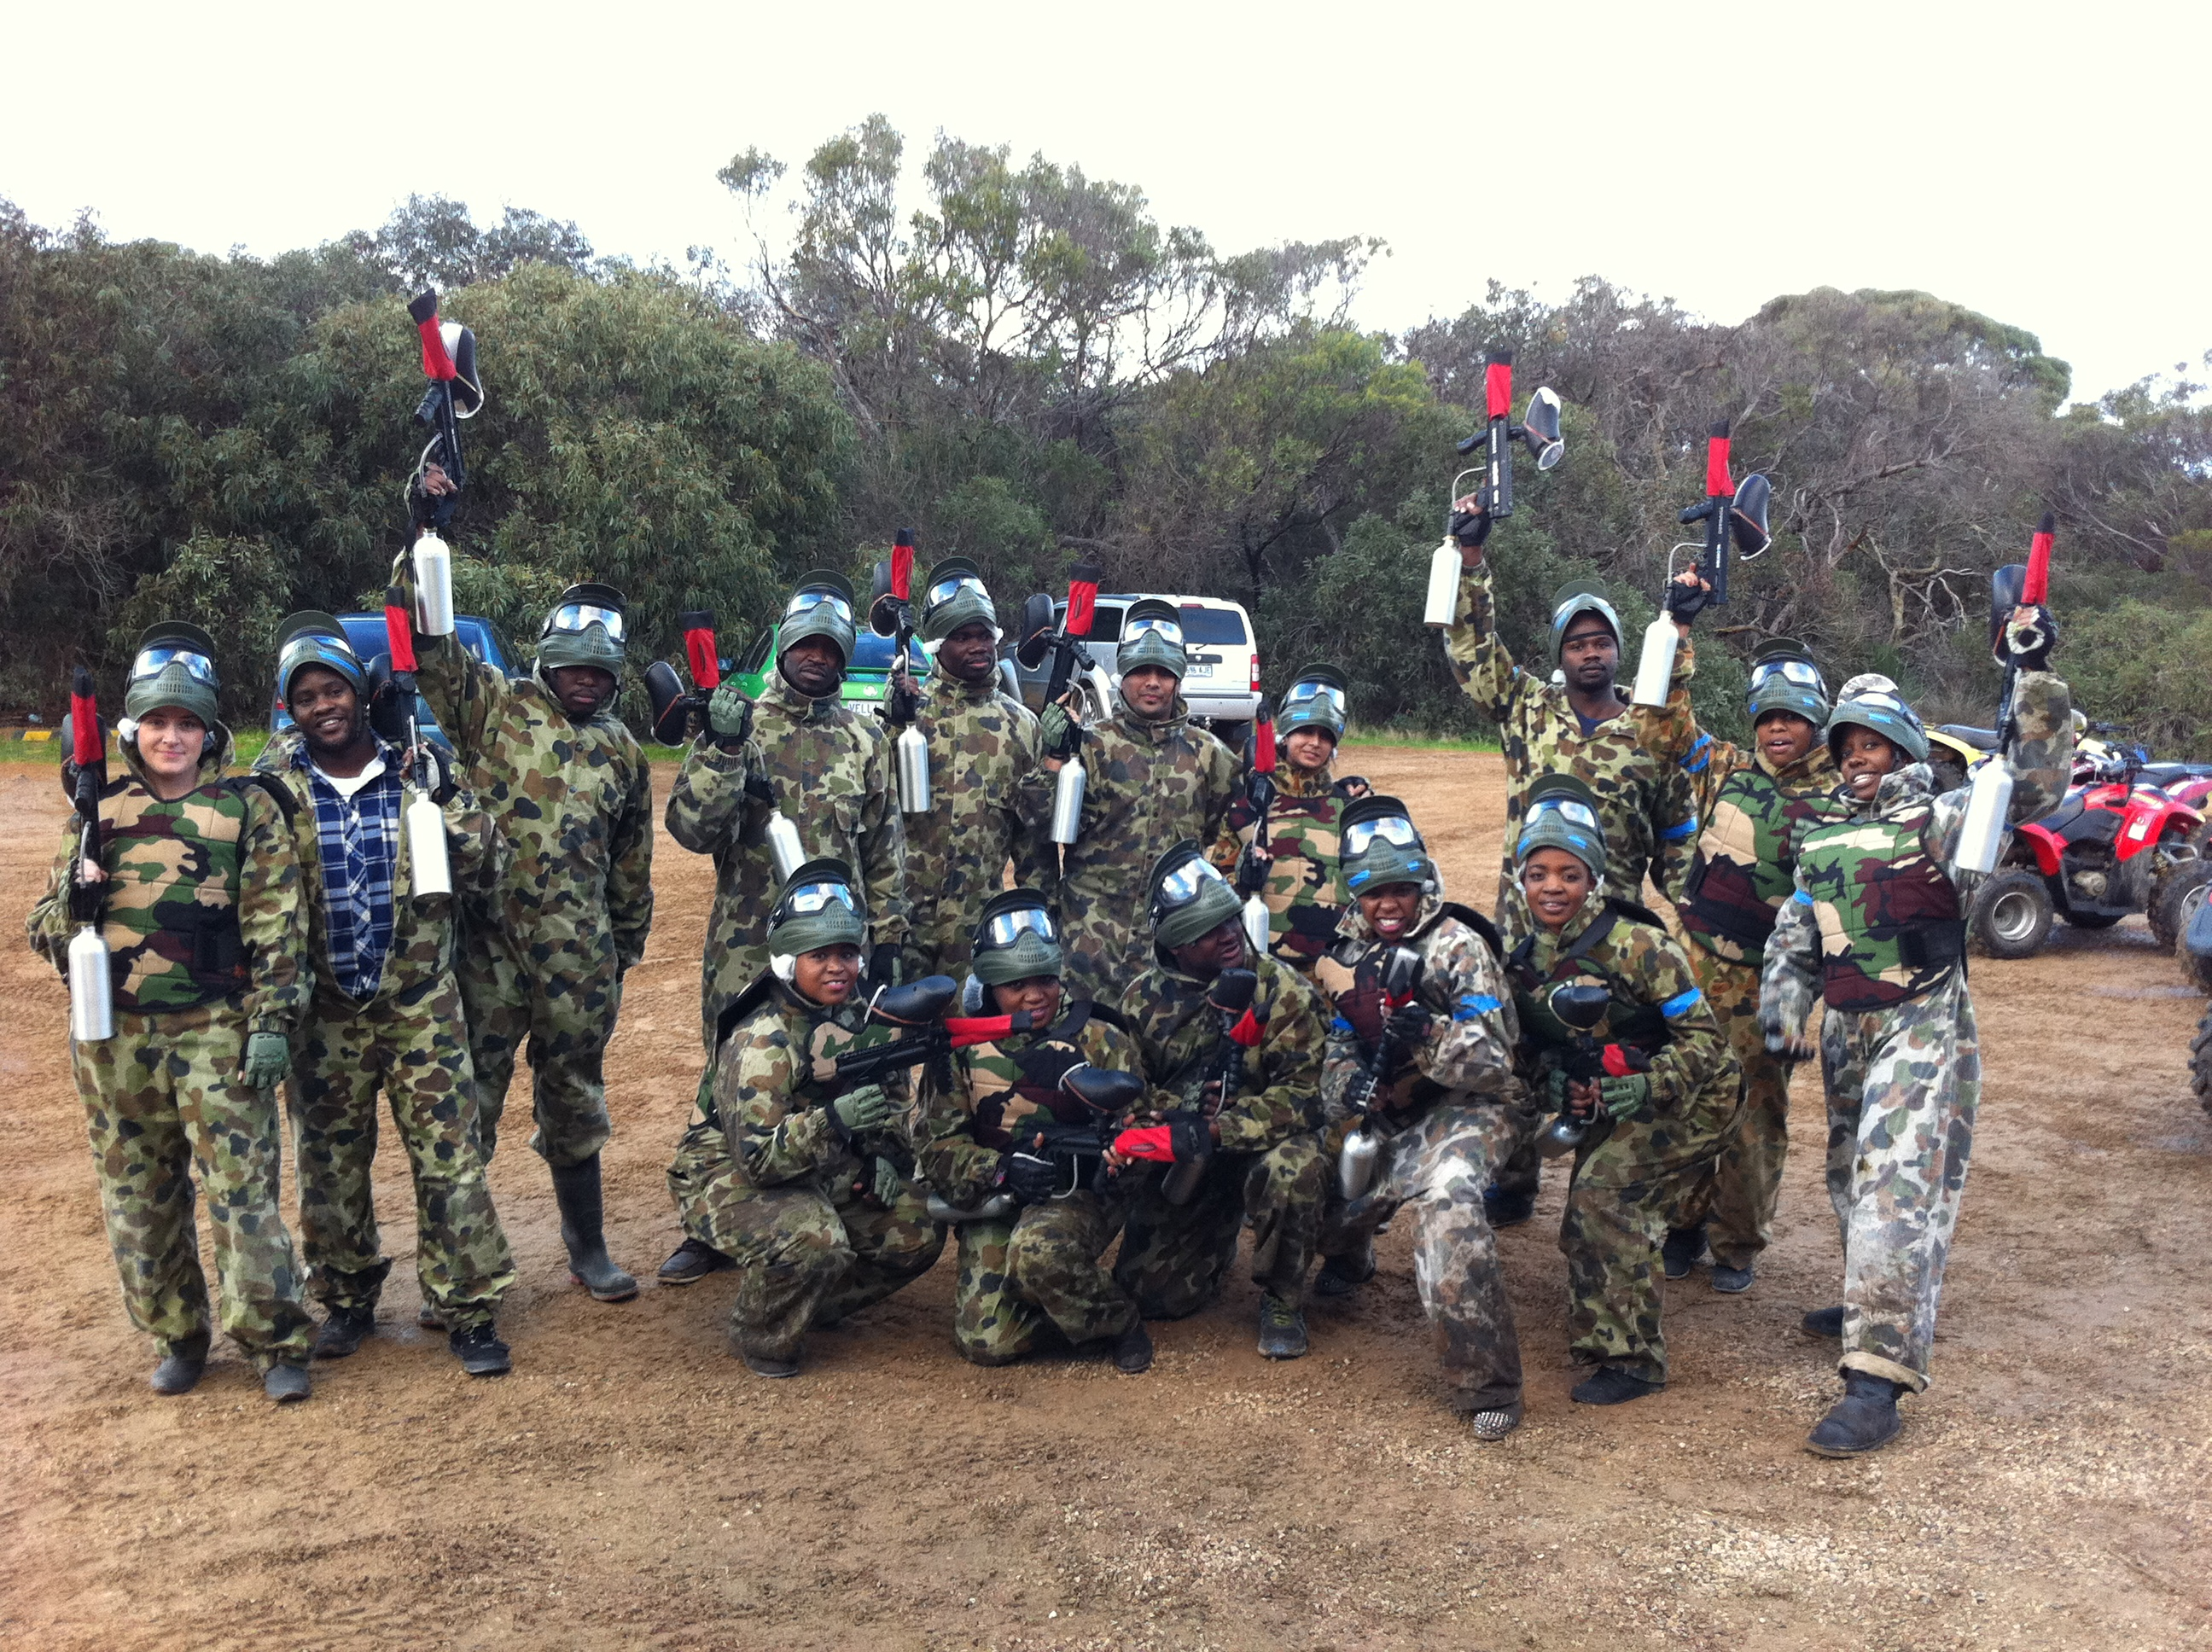 Kangaroo Island Paintball fun